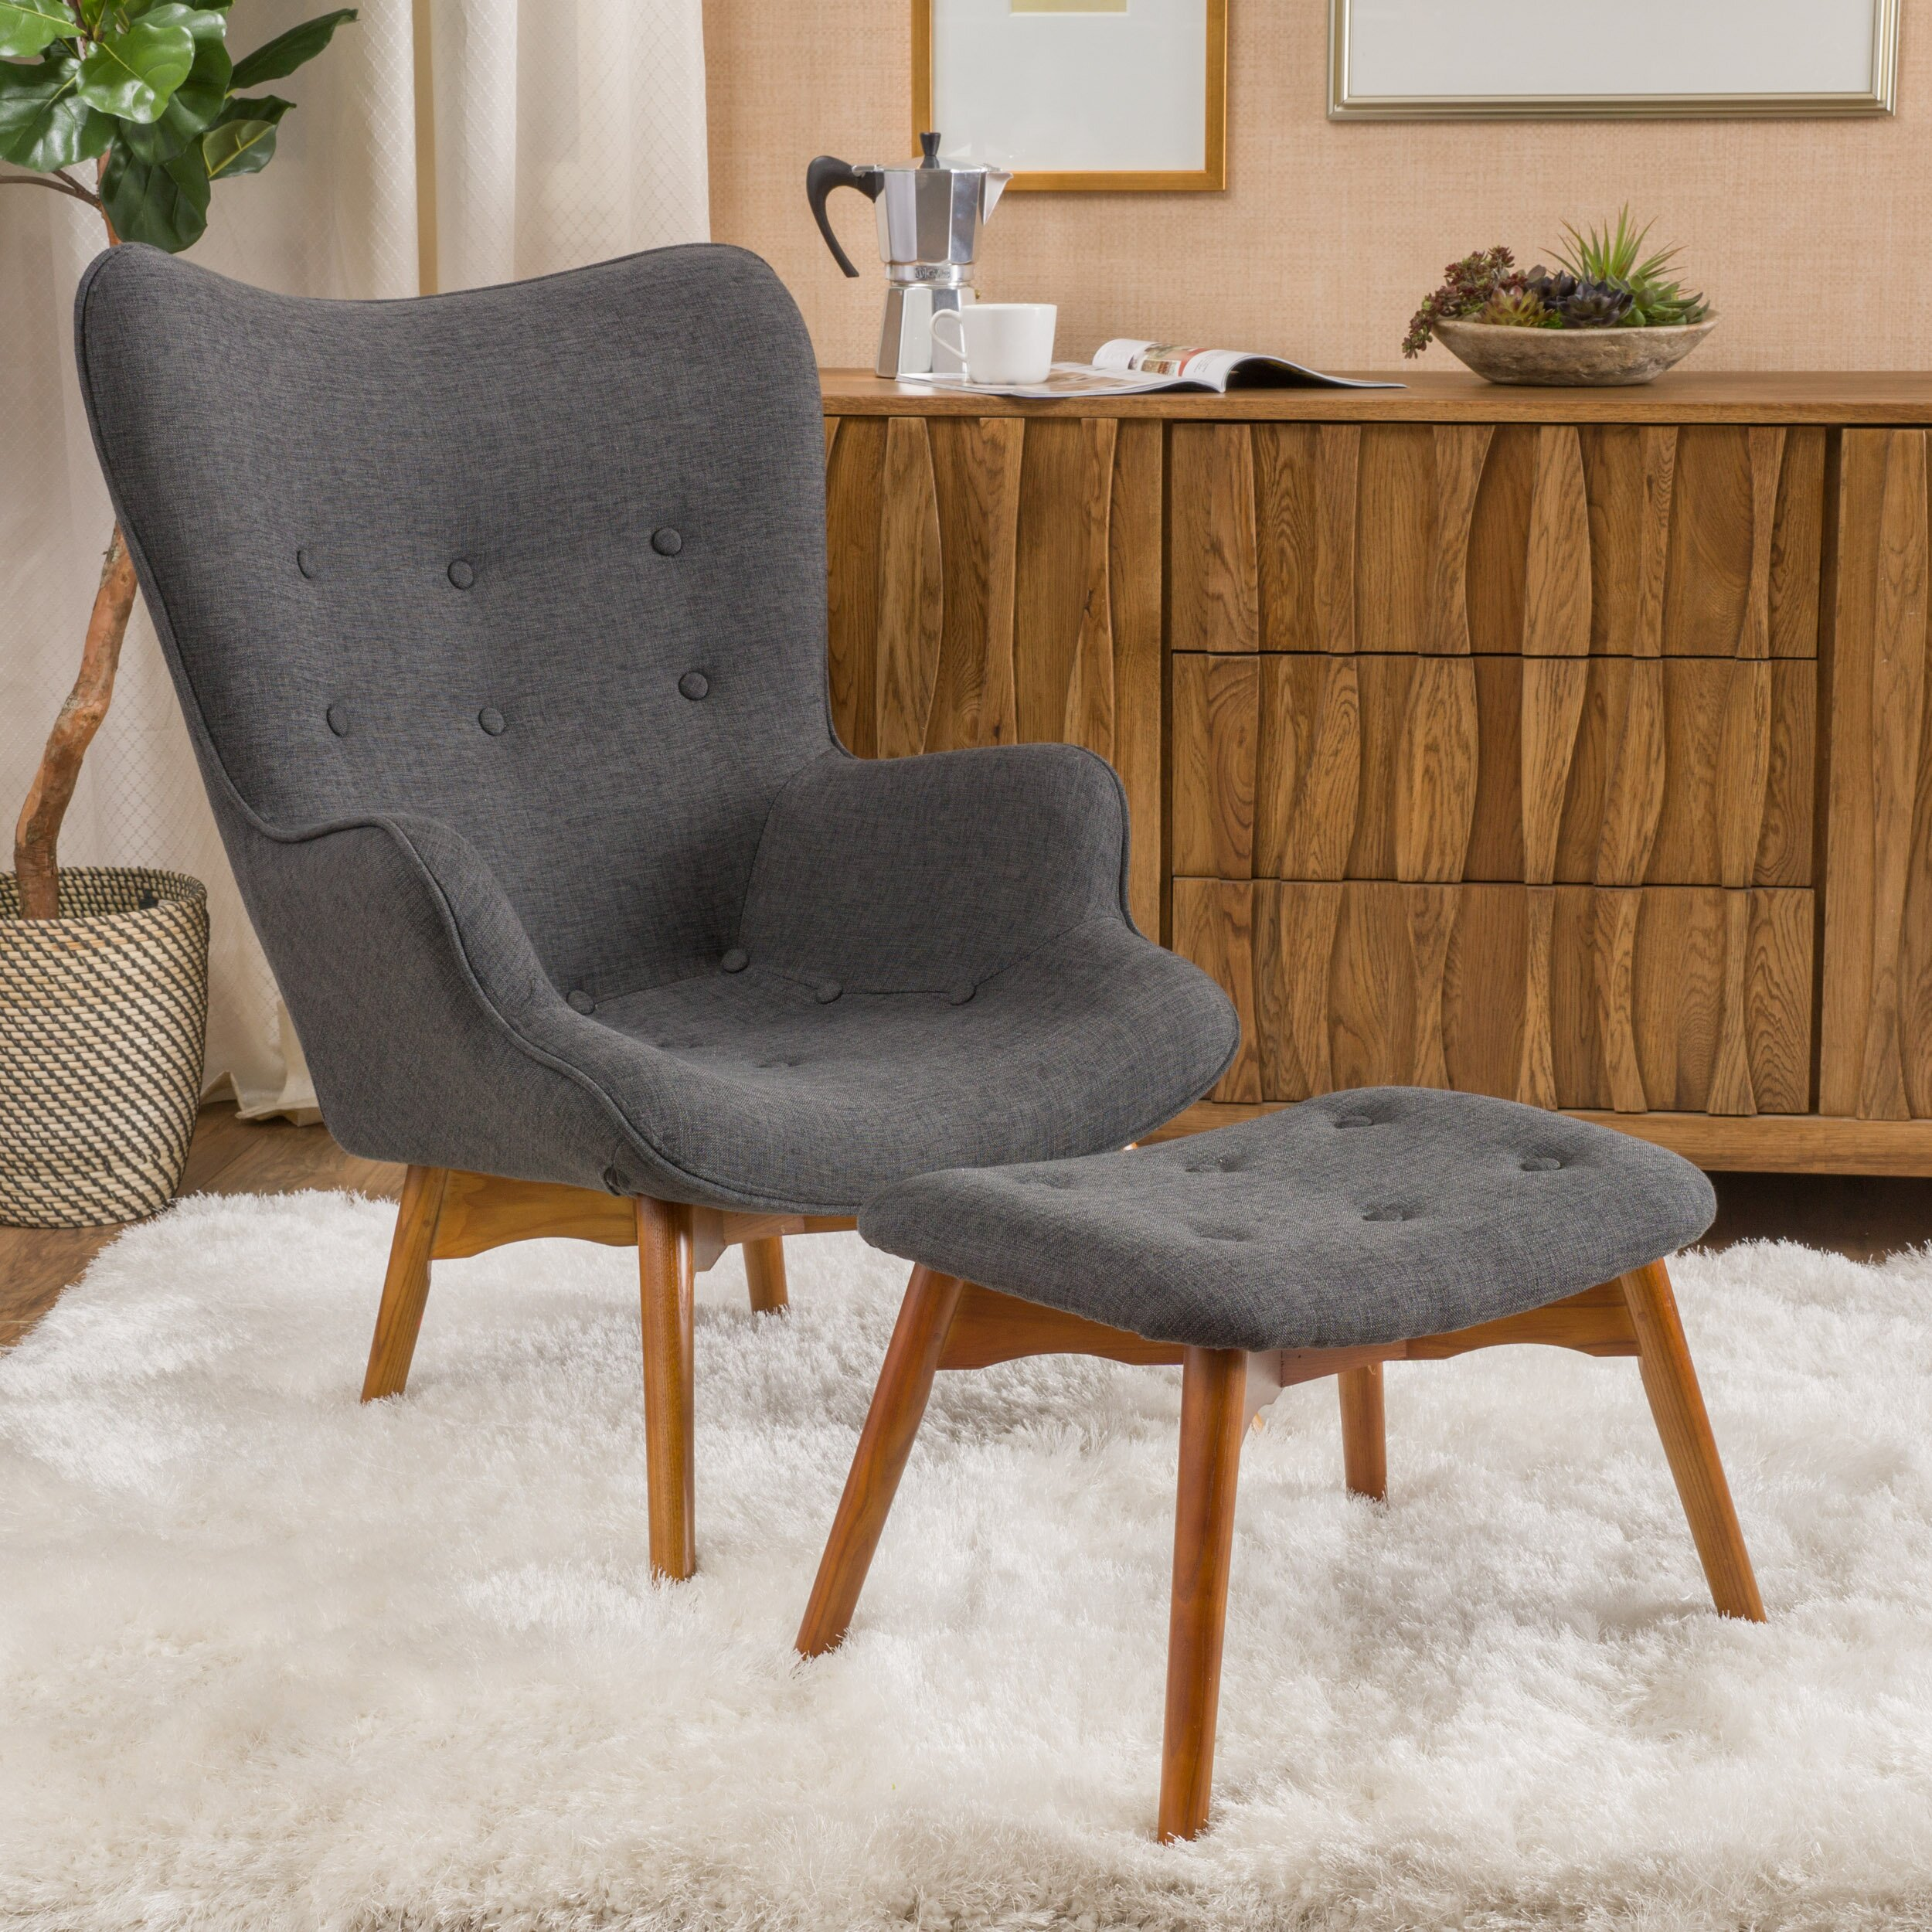 Langley street canyon vista mid century accent chair set for Outdoor furniture langley